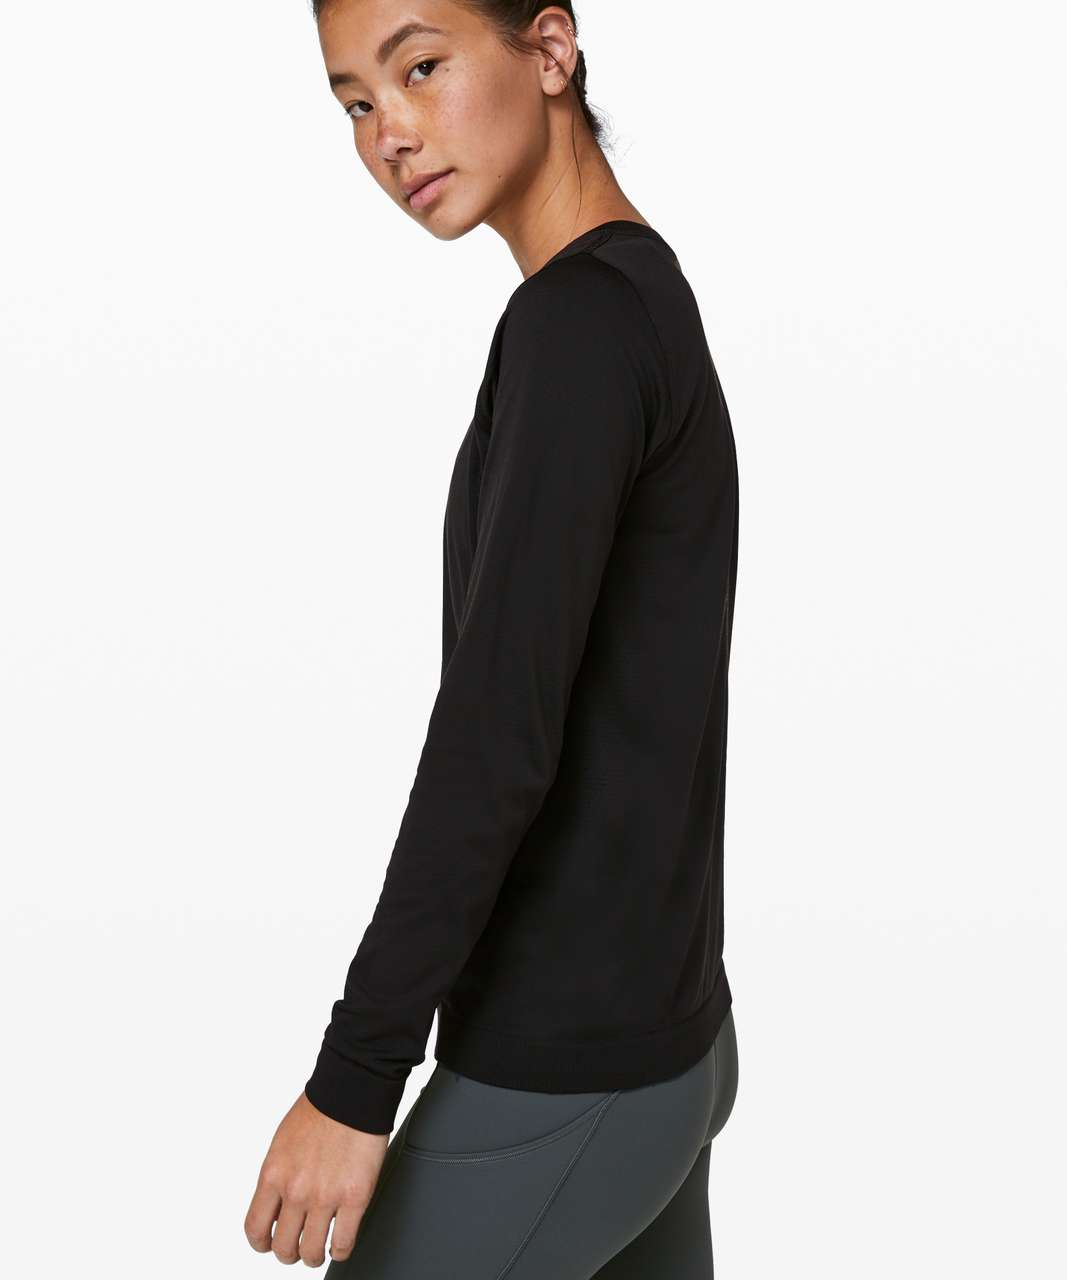 Lululemon Swiftly Tech Long Sleeve (Breeze) *Relaxed Fit - Black / Black